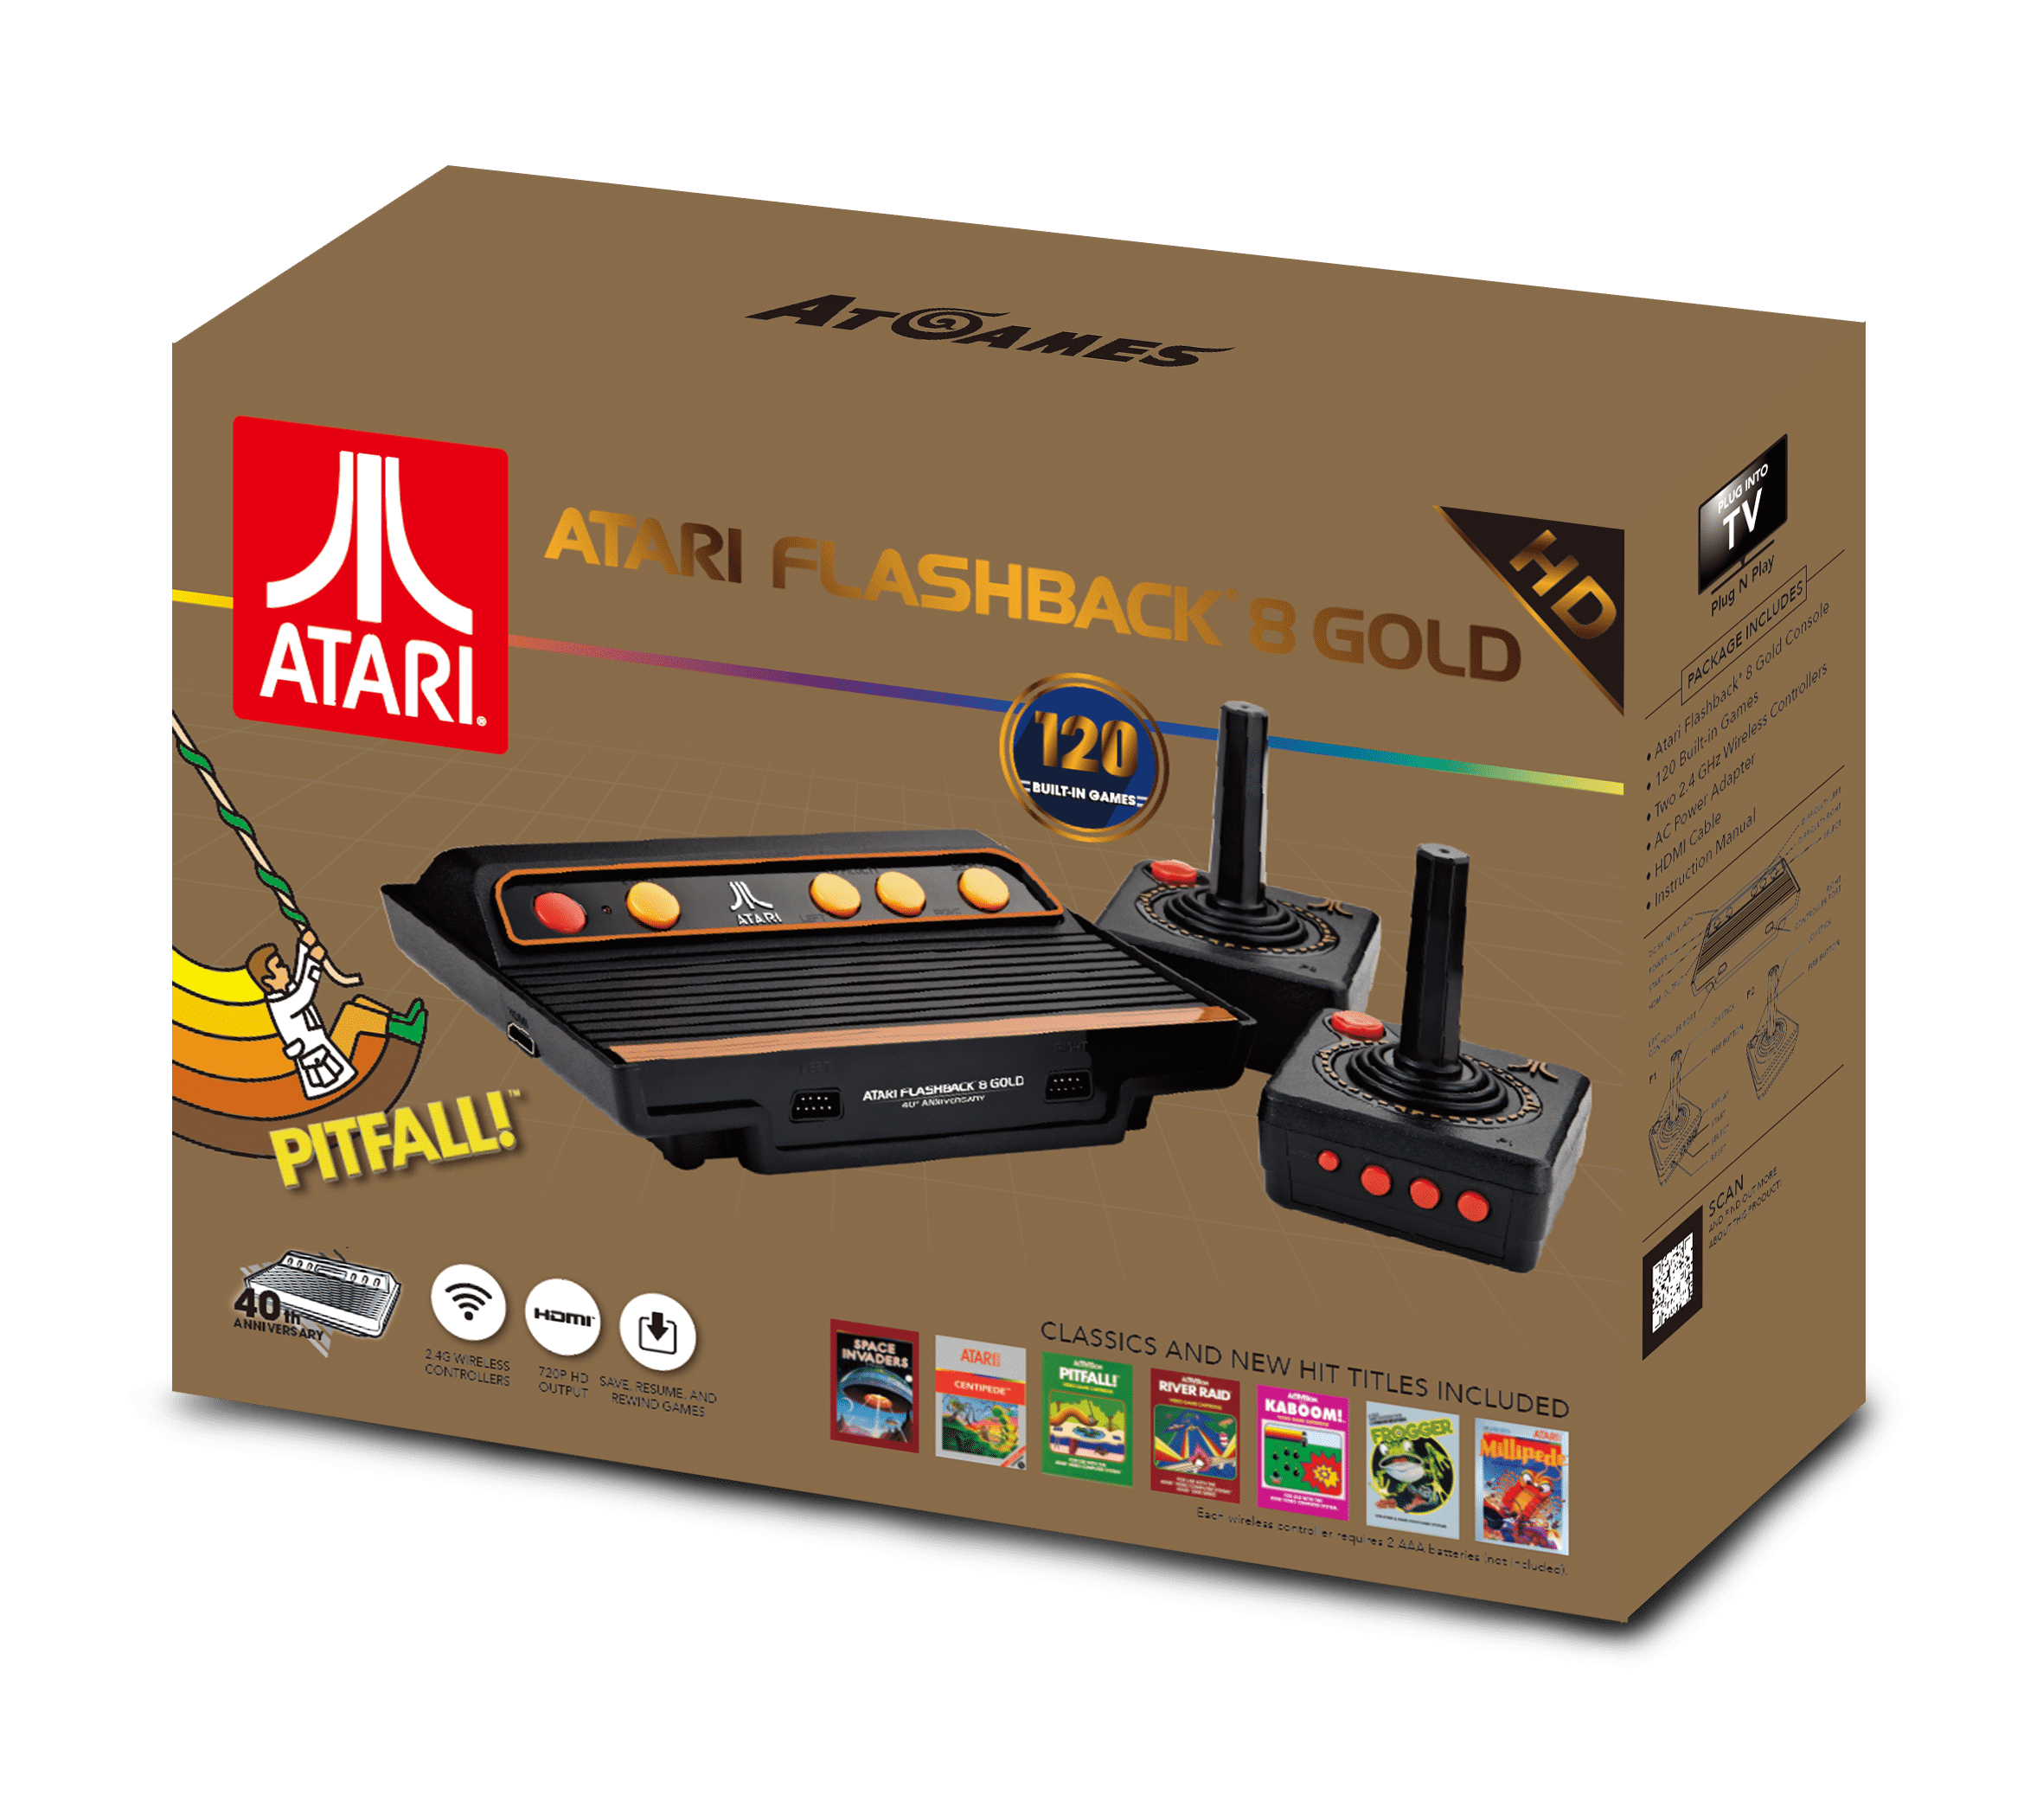 Atari Flashback 8 Gold: HD Classic Console with 120 Built-In Games, Black